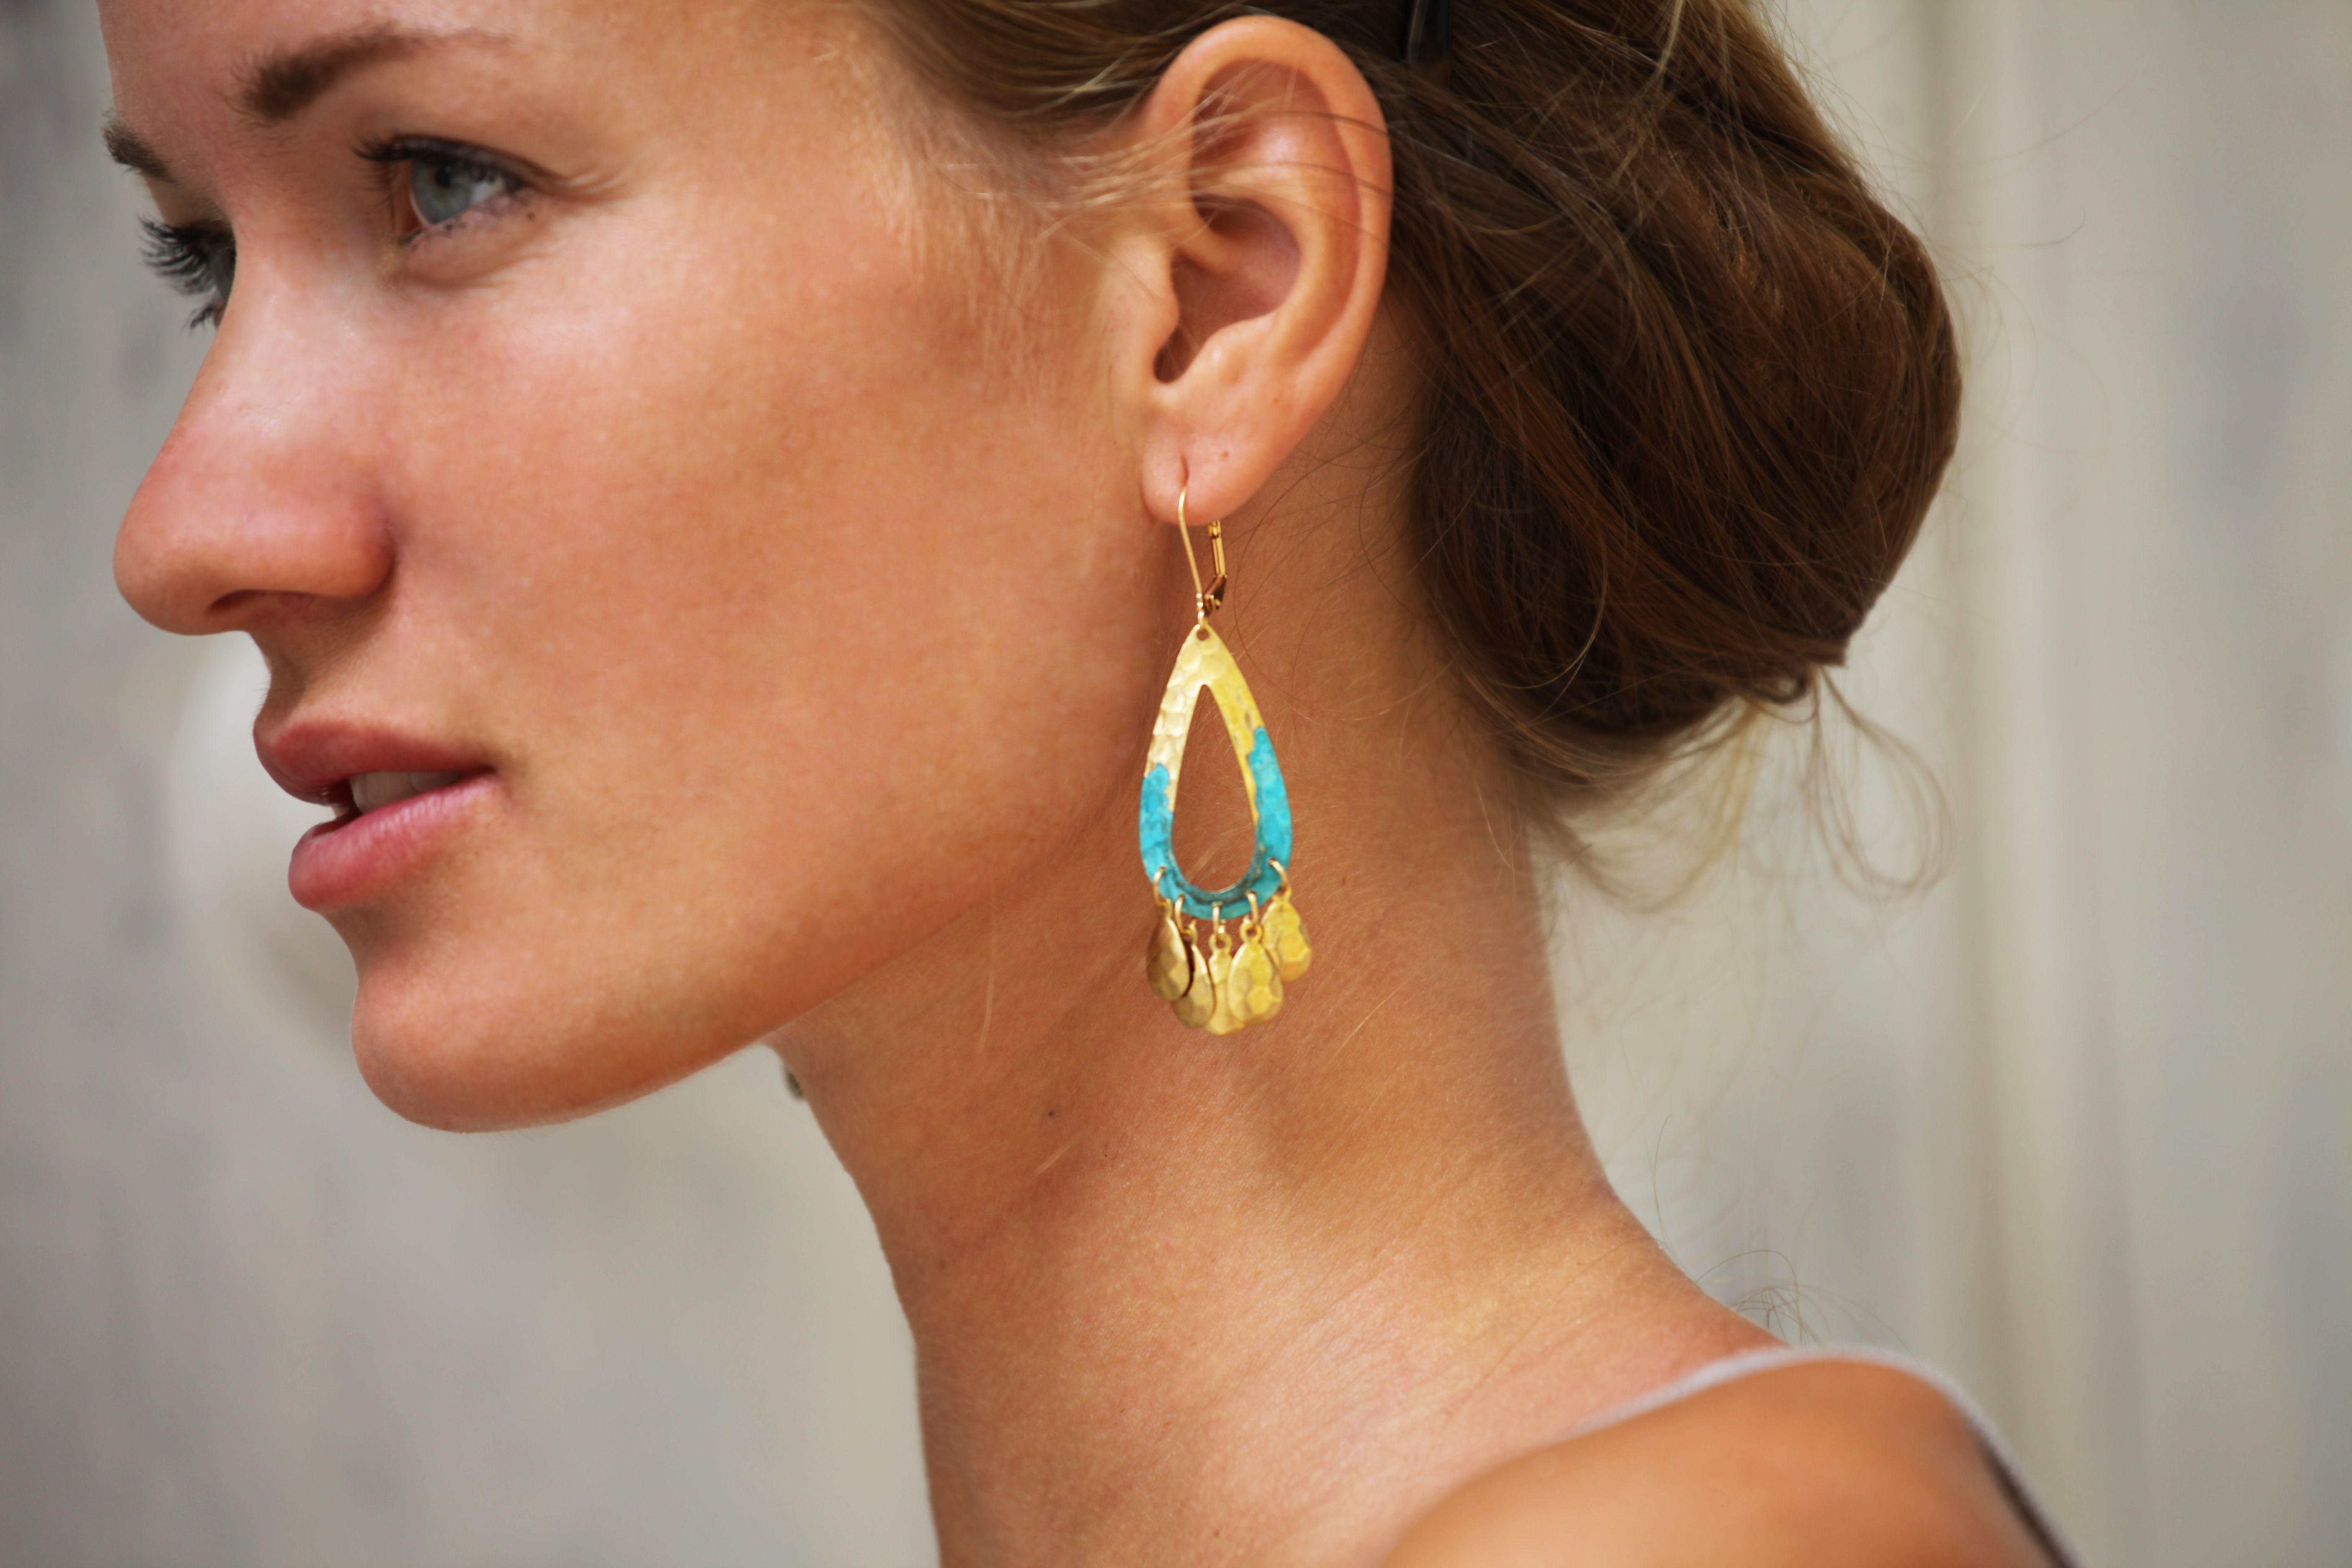 25+ We dream in color jewelry viral